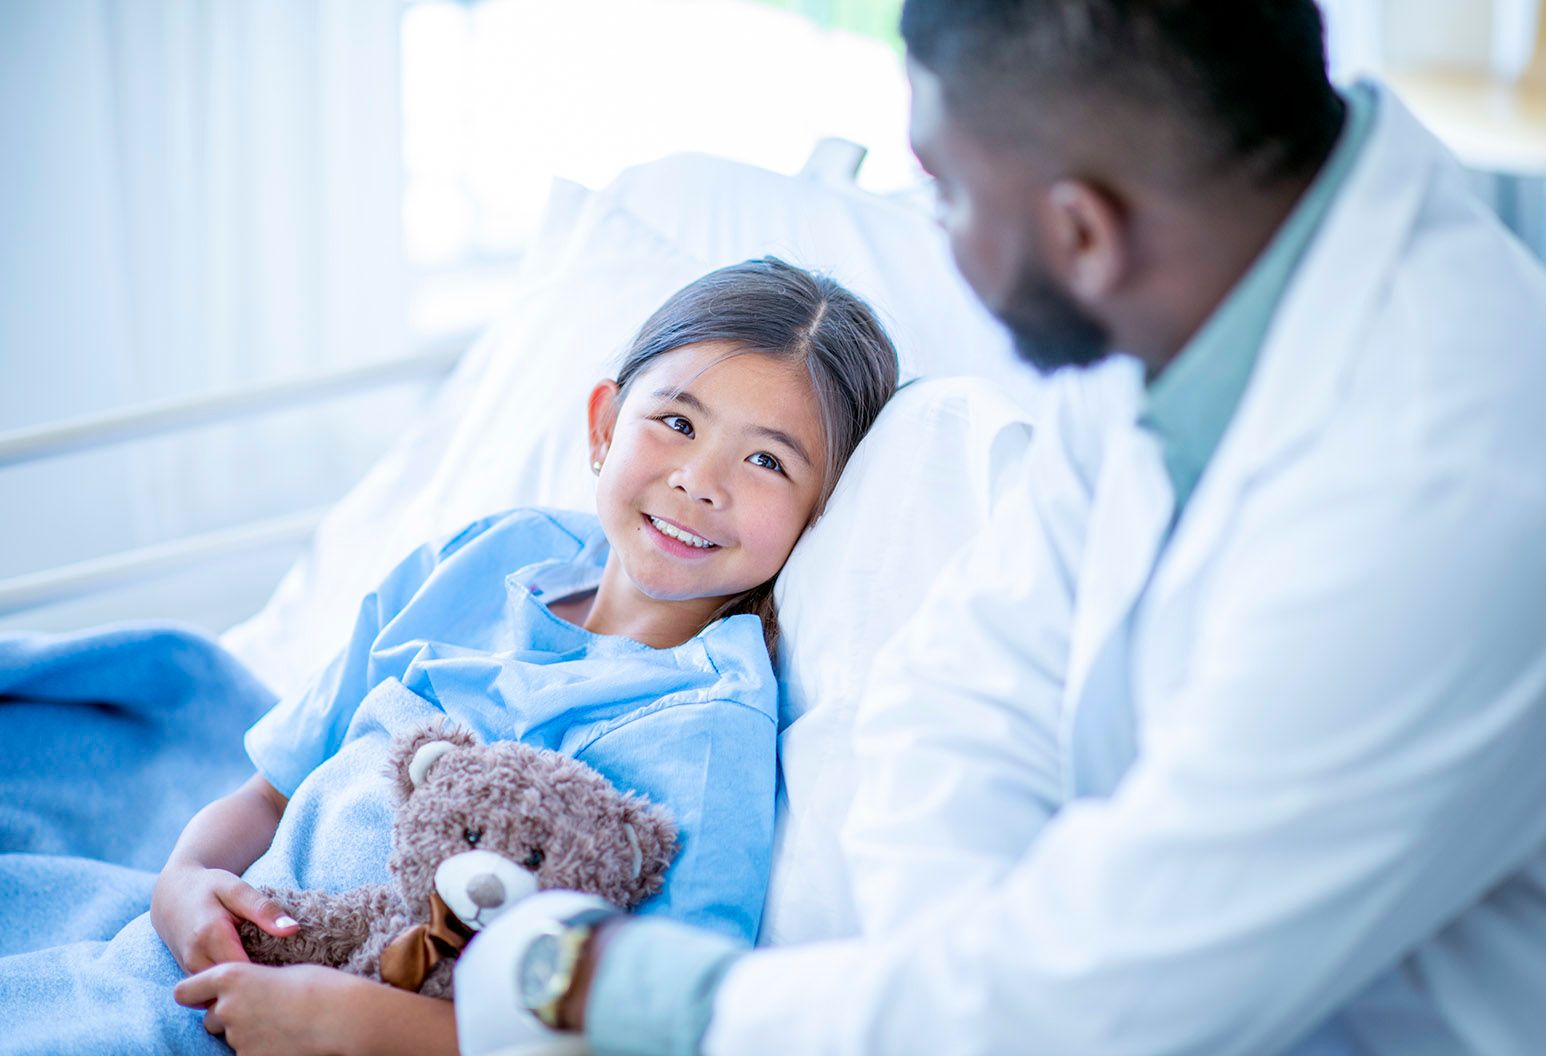 A young girl lays in a hospital bed wearing a blue patient gown, holding a teddy bear. A doctor sits bedside and the little girl looks up at him and smiles.